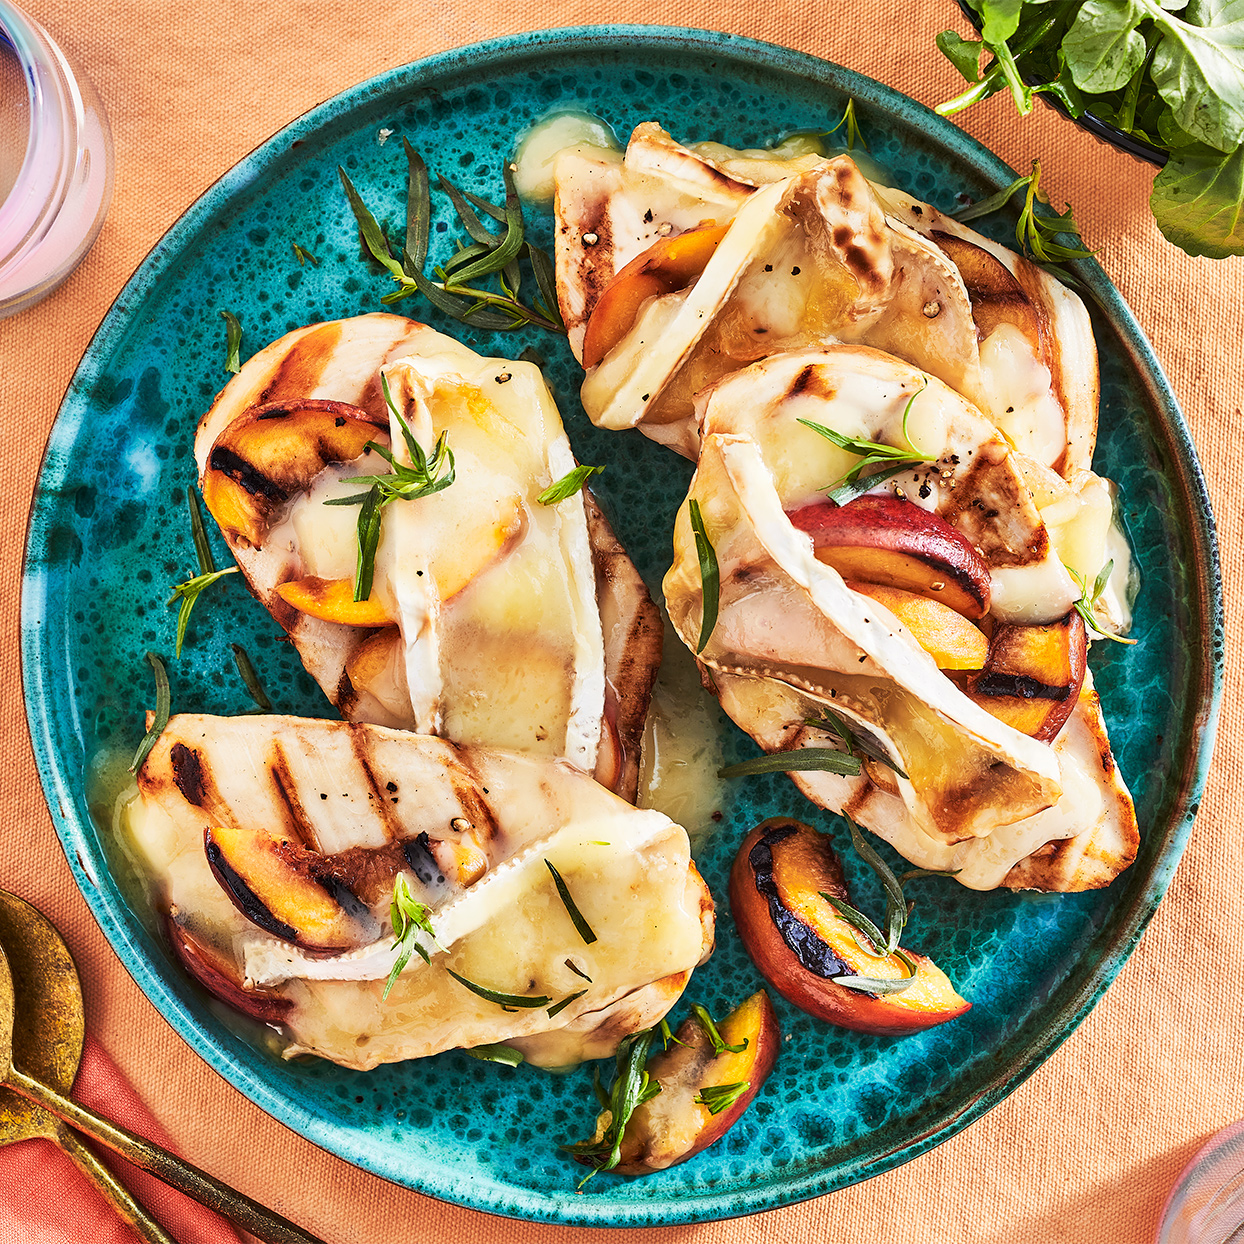 Grilled Peach & Brie Smothered Chicken